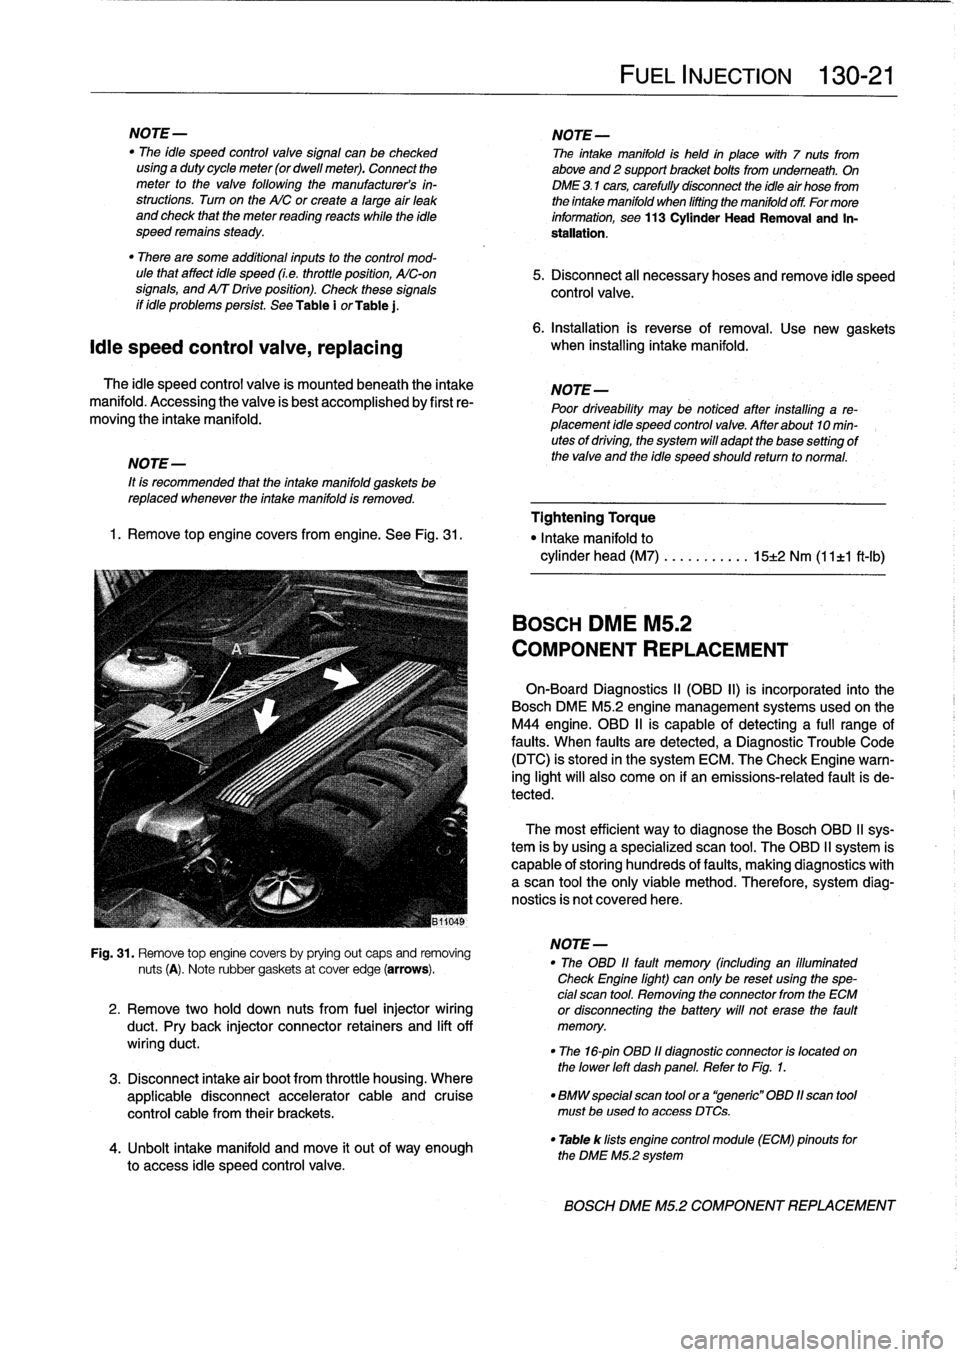 Battery Bmw 318i 1996 E36 Workshop Manual 318ti Engine Diagram Intake Page 167